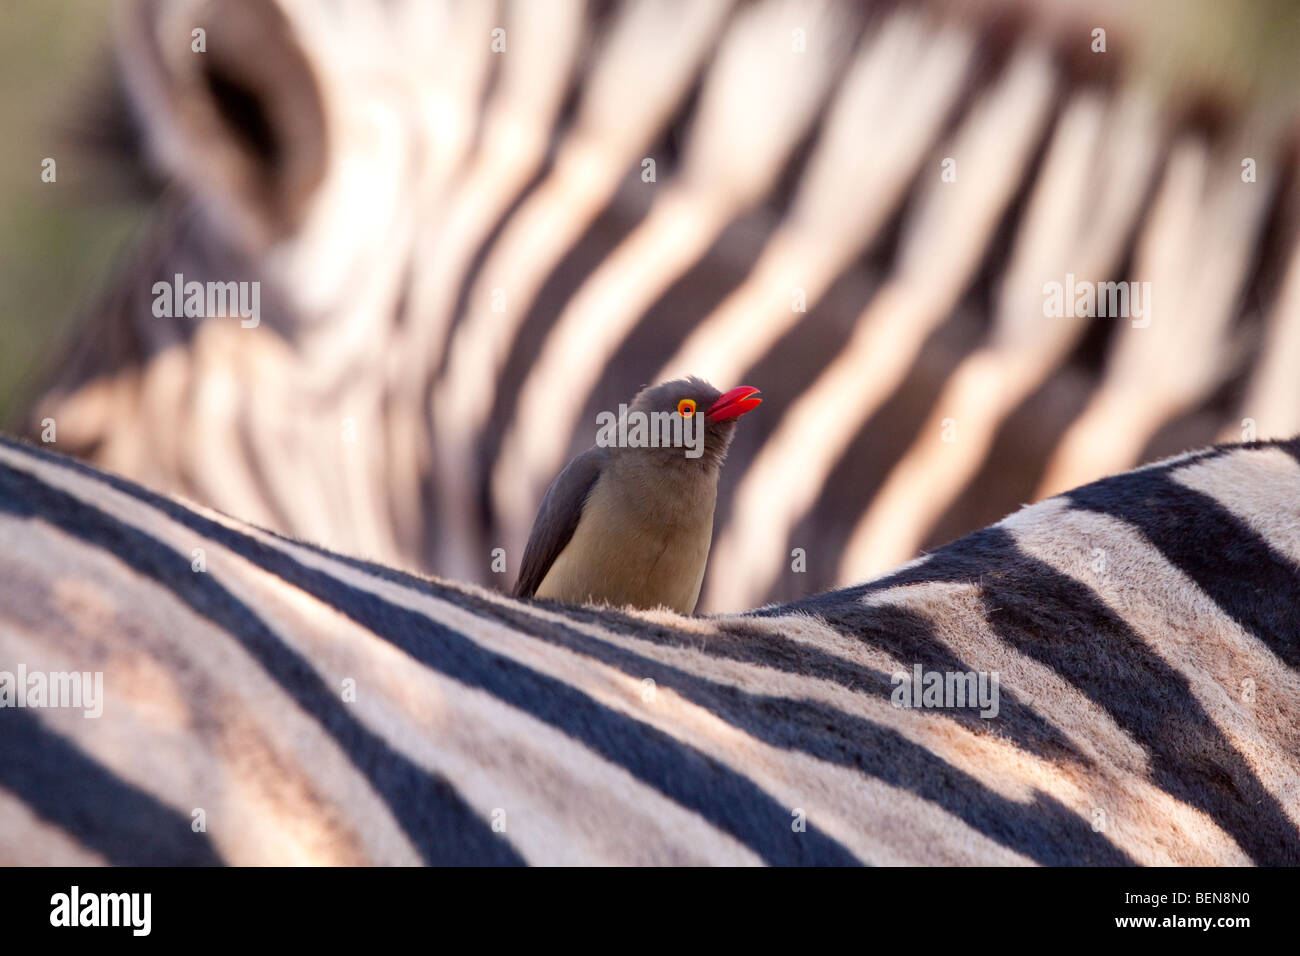 Plains Zebra (Equus Quagga) with Red-billed Oxpecker (Buphagus Erythrorhynchus). - Stock Image